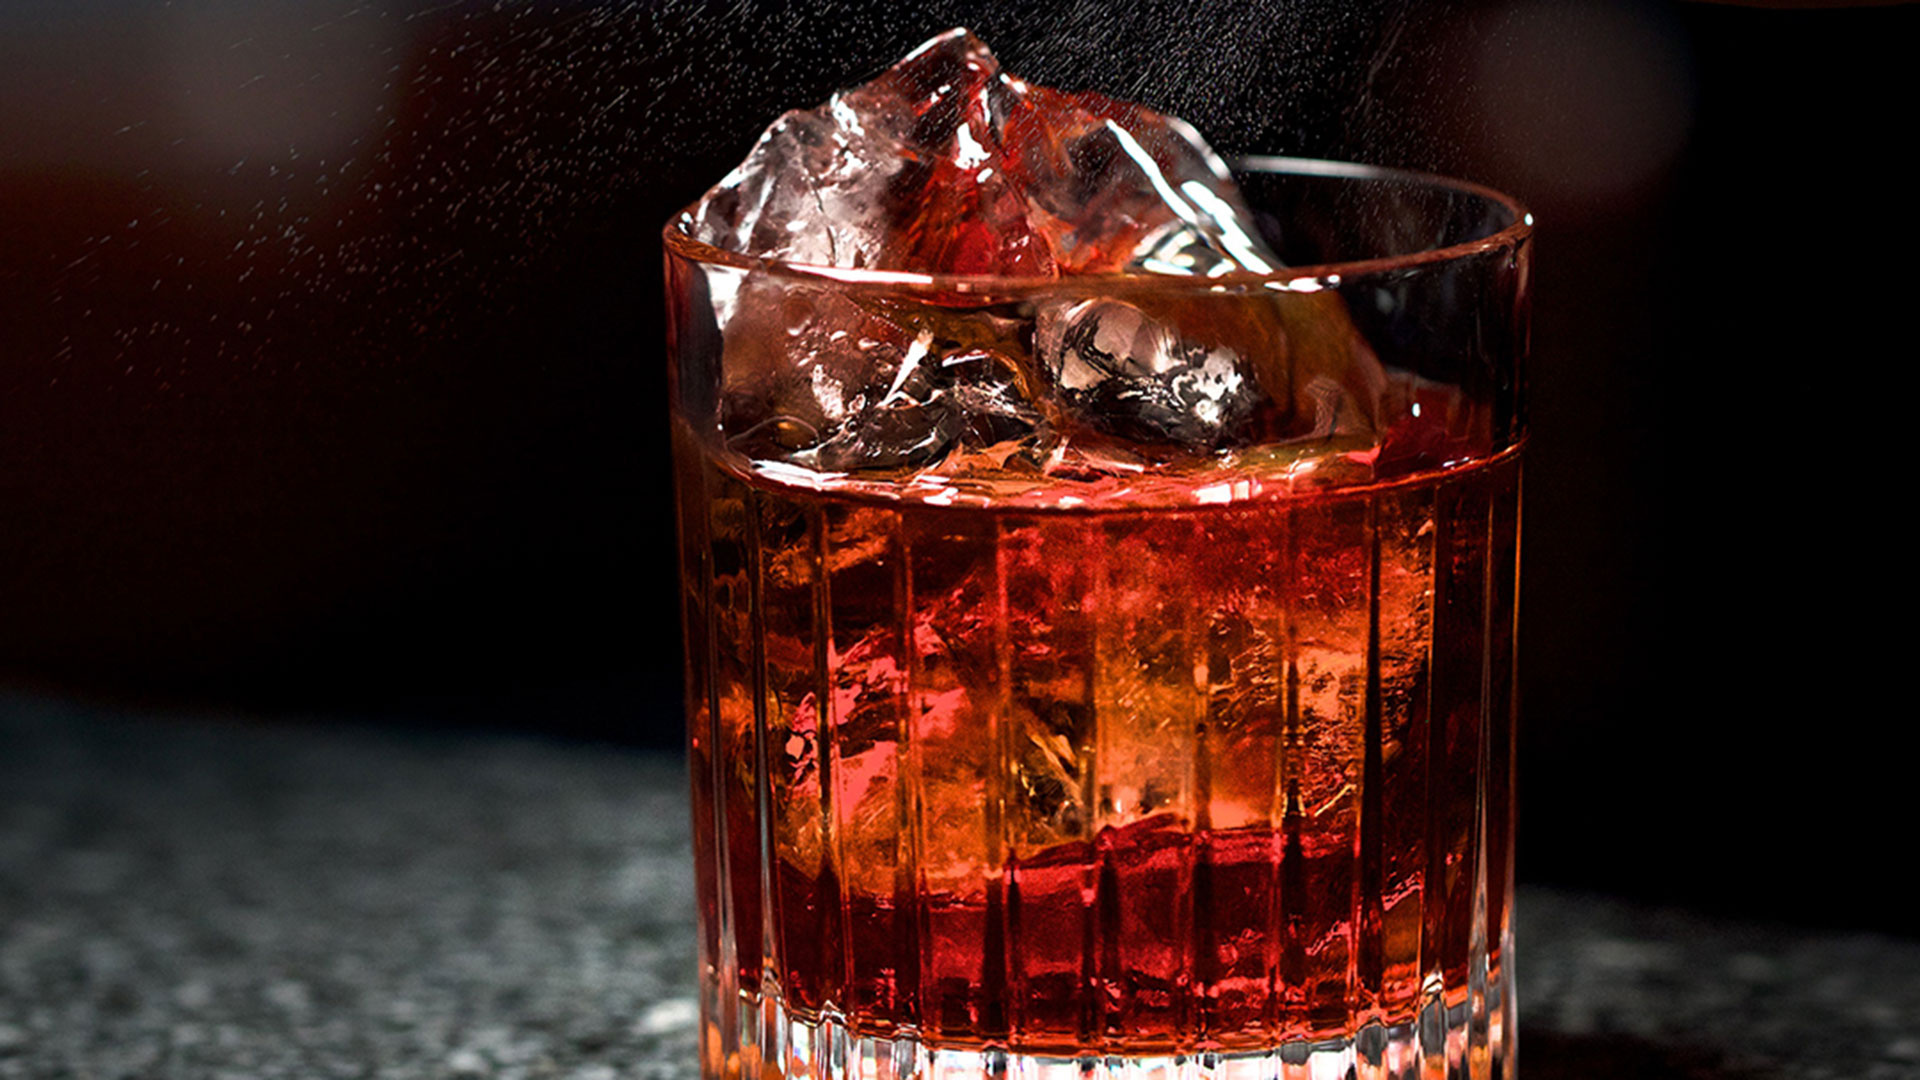 Campari's Pumpkin Spiced Negroni